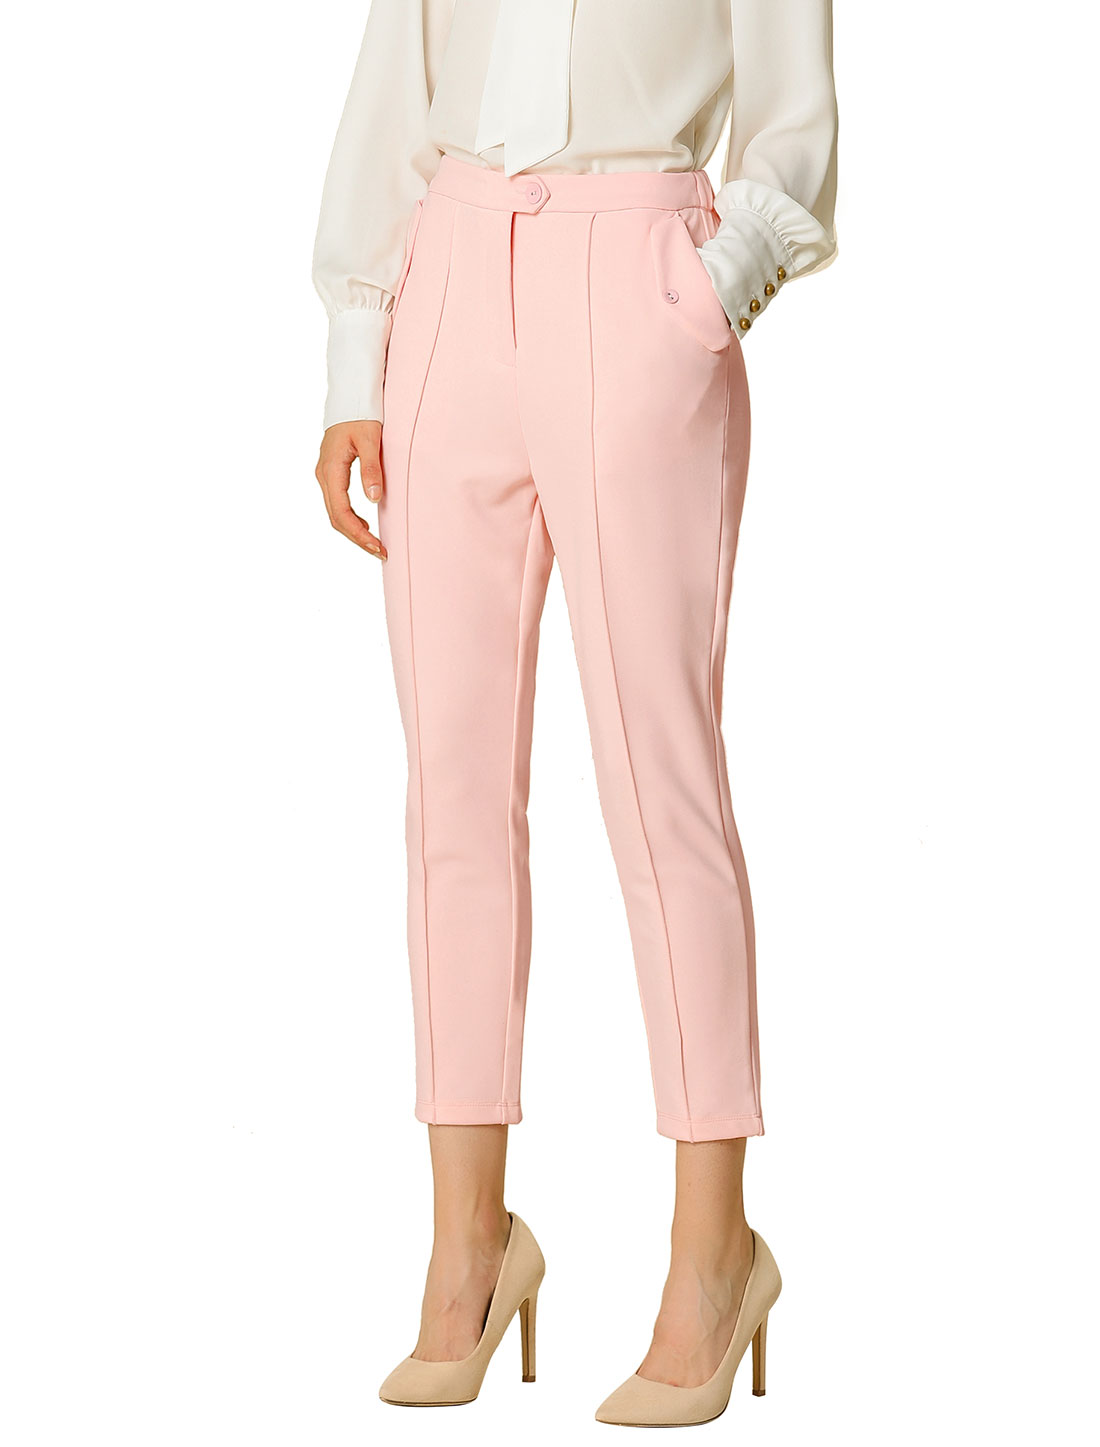 Allegra K Women's Work Pants Slim Stretchy Cropped Trousers Pink L